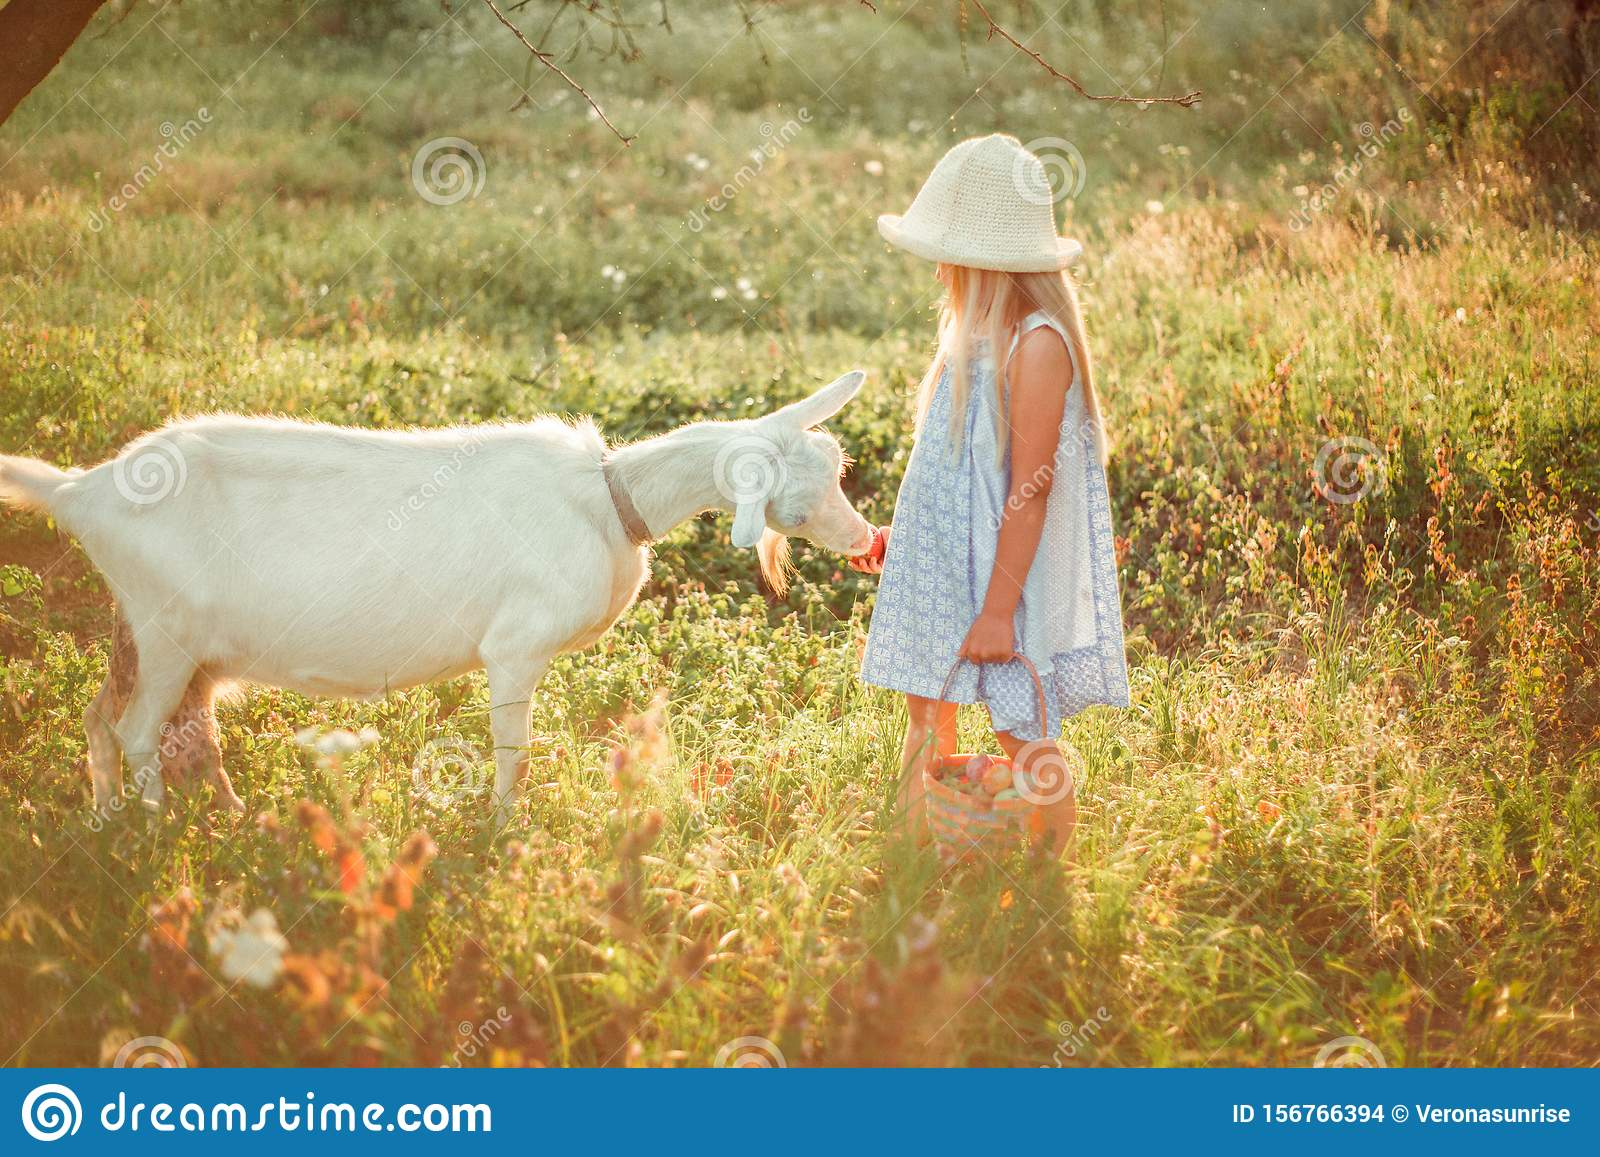 Ukrainian girl on a farm feeds a goat. Cute little girl with long blonde hair at sunny sunset spends time with a pet. Cute baby 6